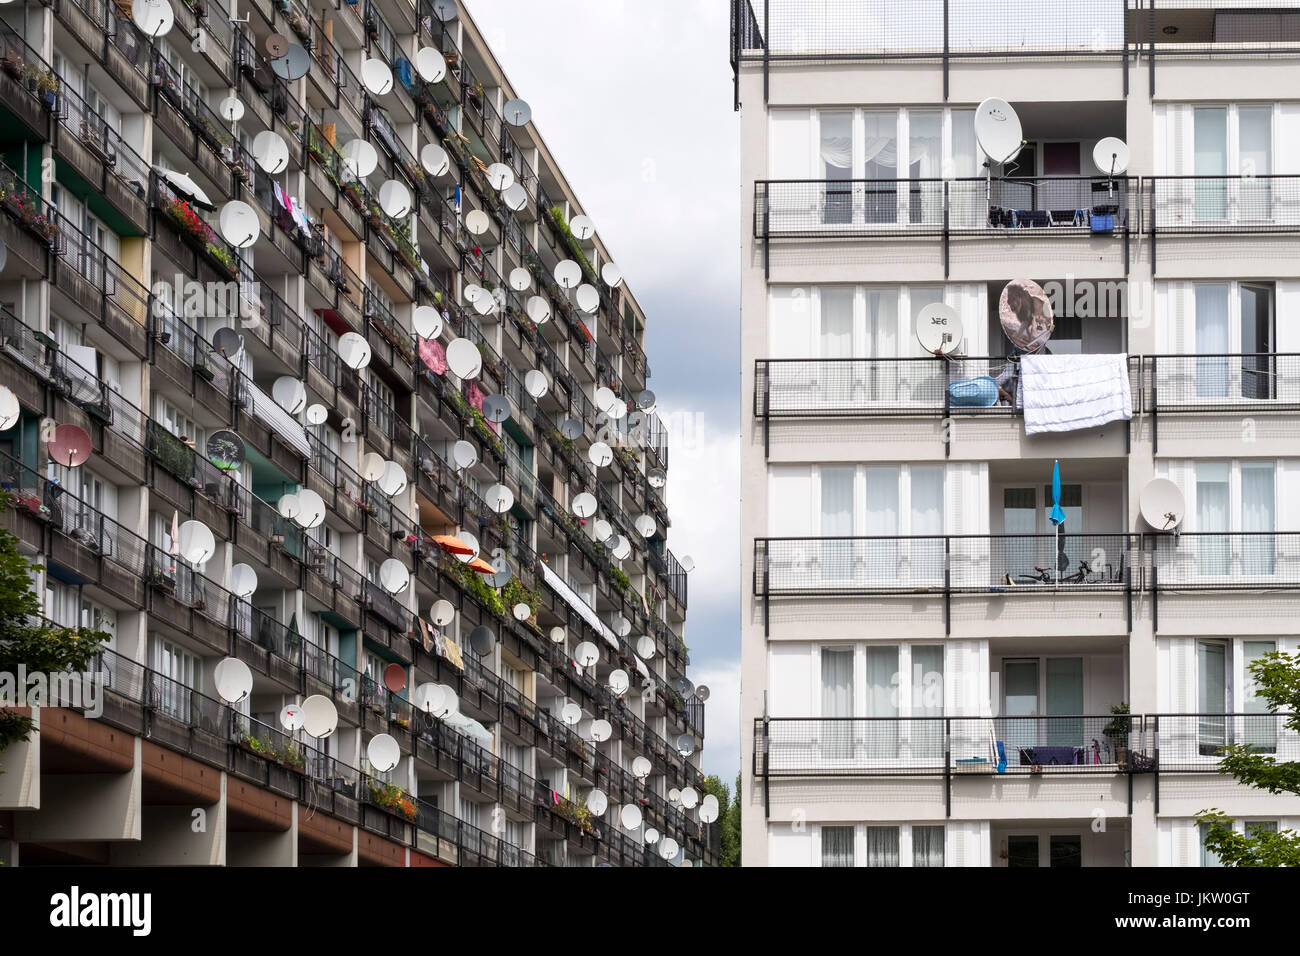 Social housing apartment blocks at Pallasseum on Pallastrasse in Schoeneberg district of Berlin, Germany. - Stock Image